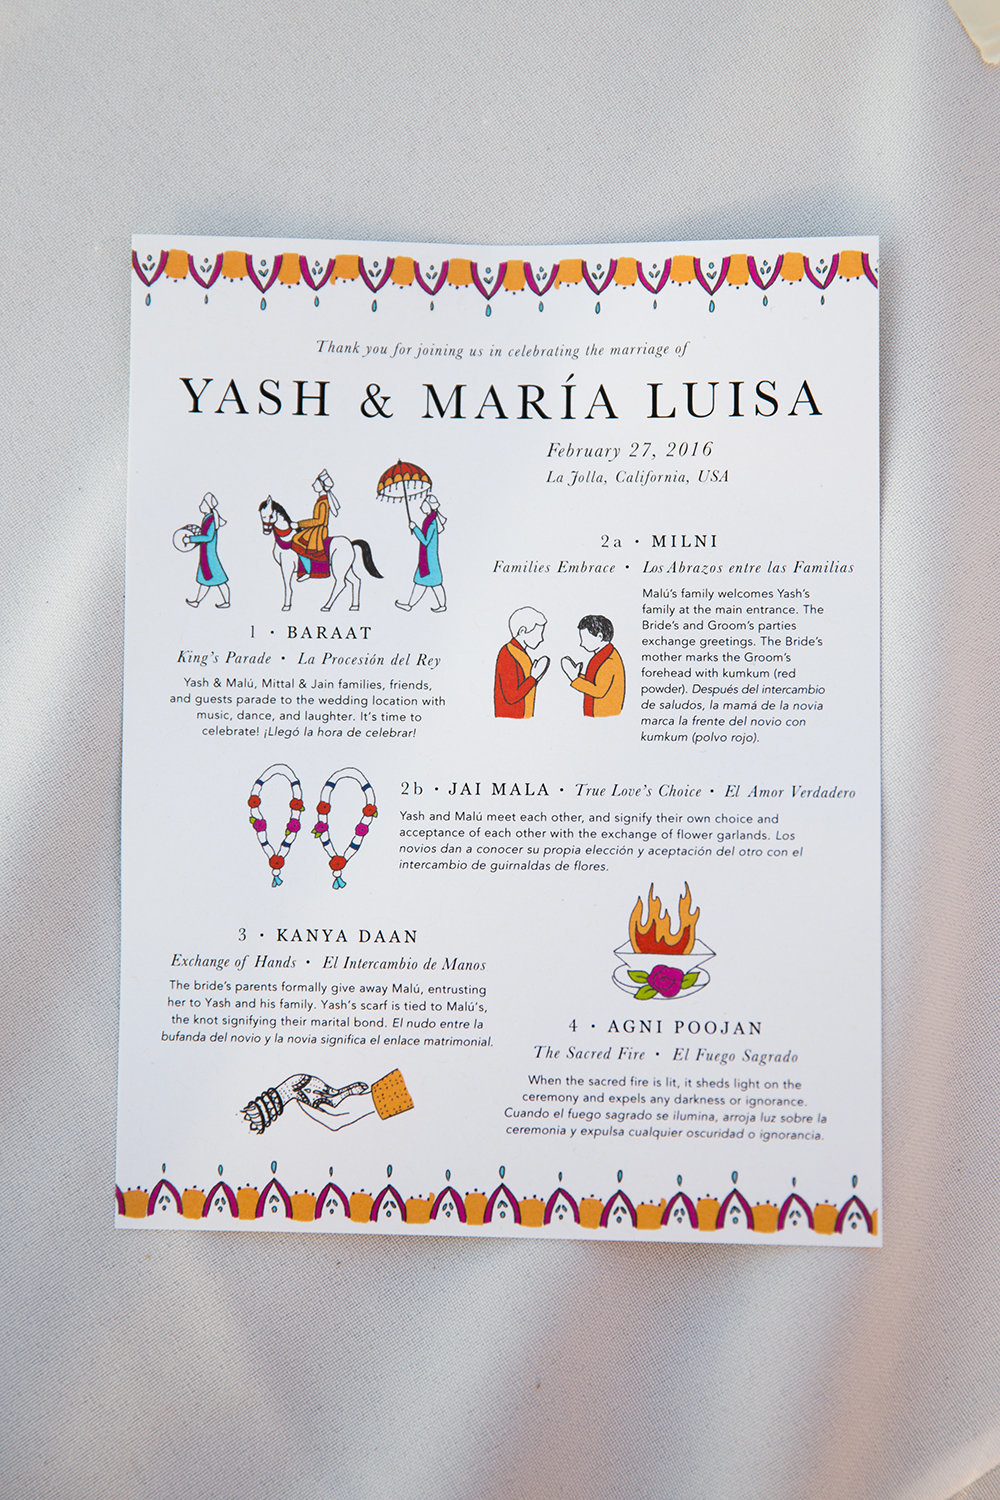 Cute wedding flyer explaining different parts of a Hindu Indian wedding ceremony